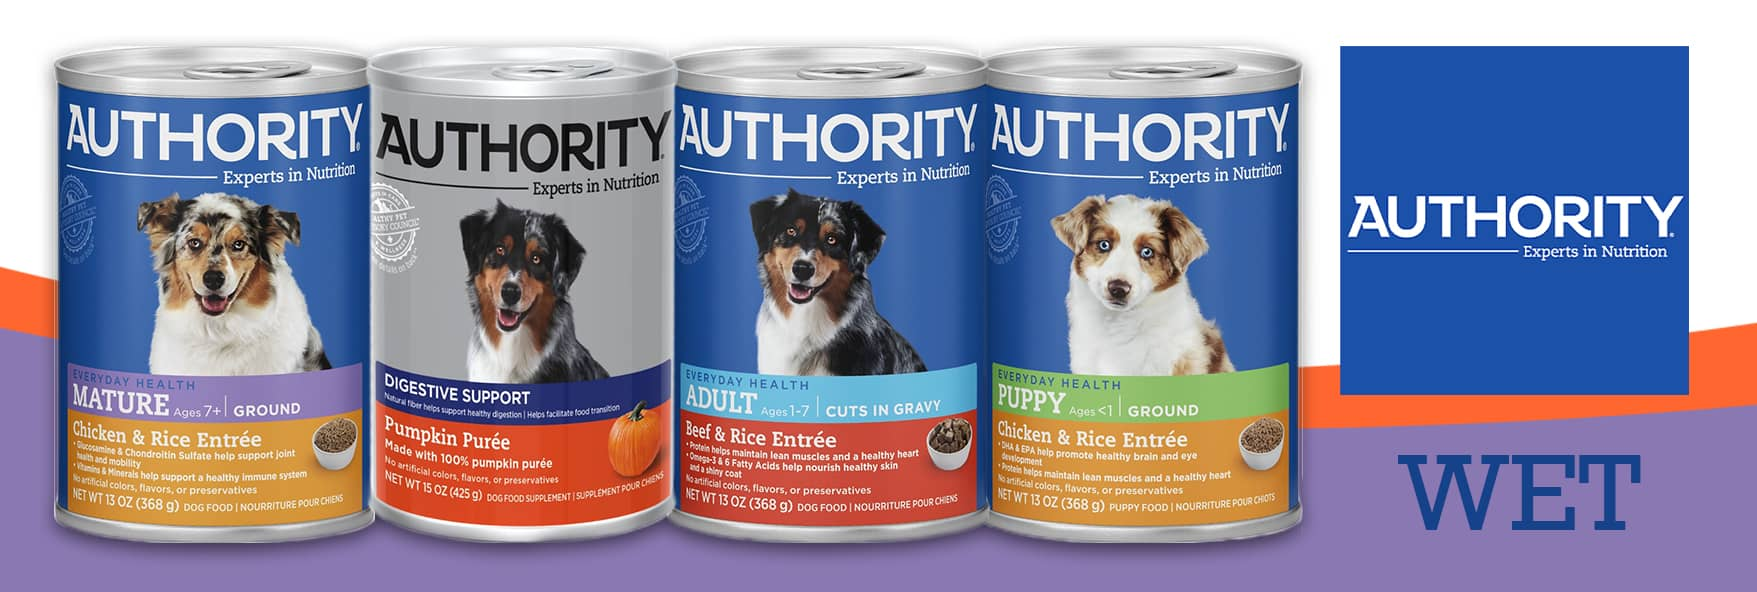 authority dog food reviews